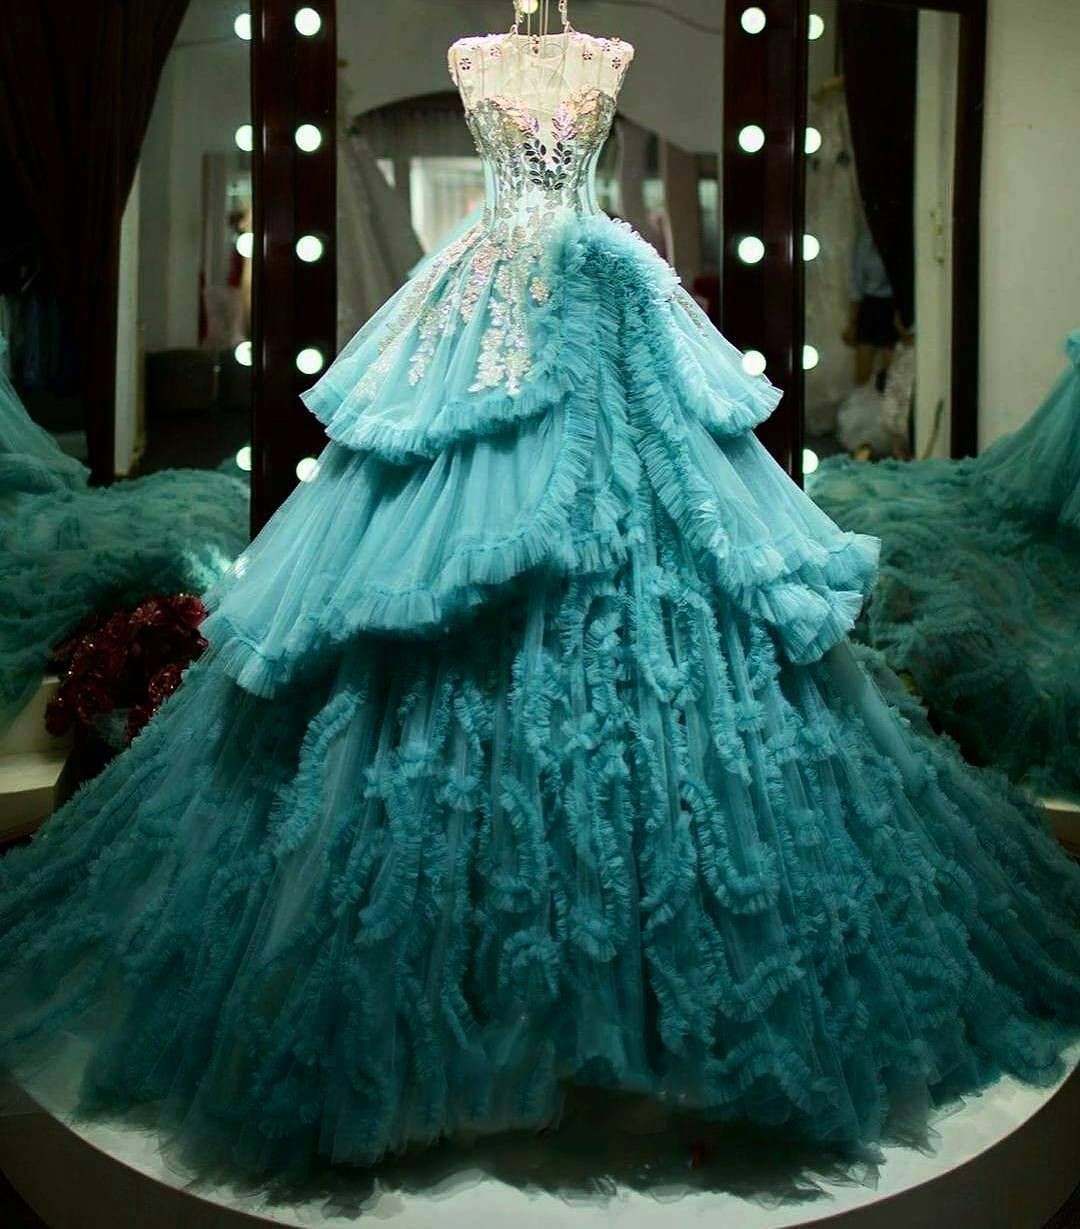 beautiful gown 👸💚yes or no? via | fairytale dress, ball